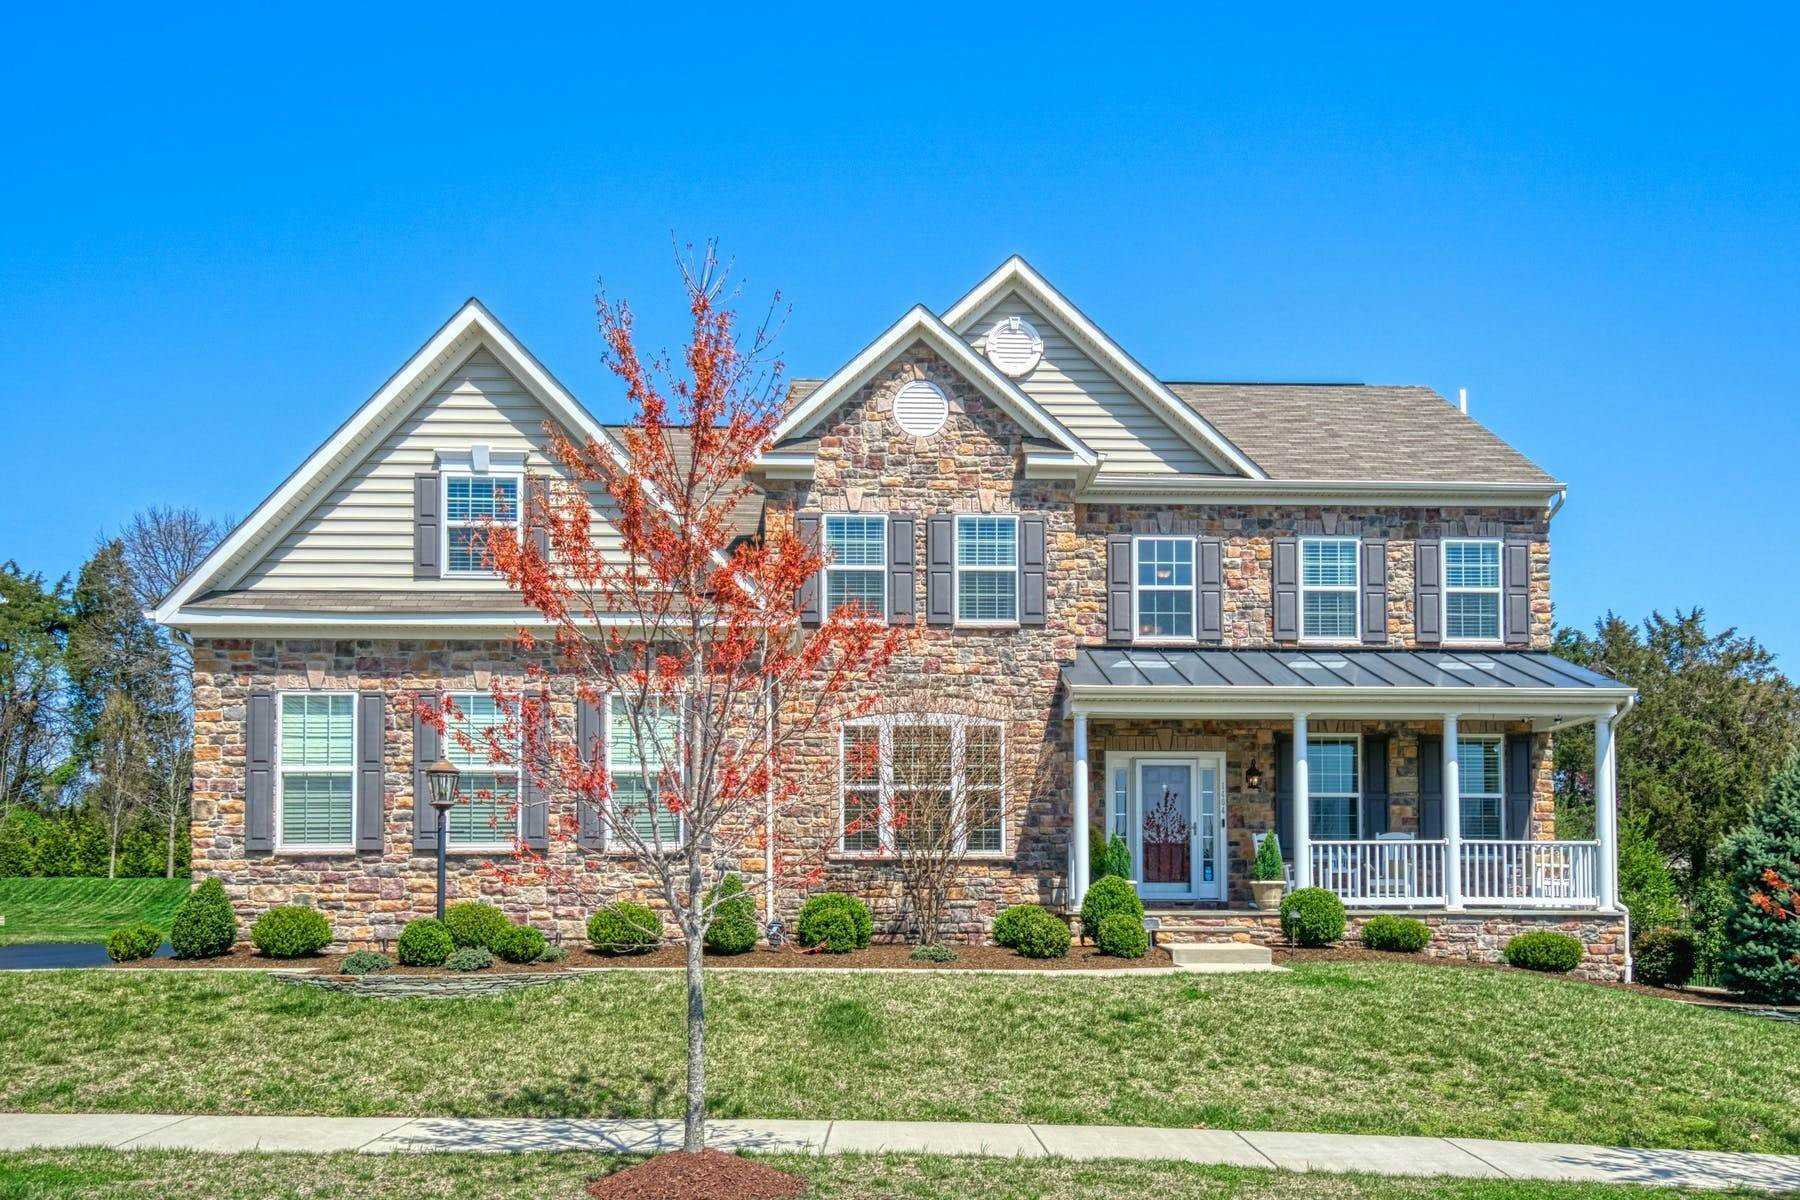 Single Family Homes for Sale at River Pointe Expanded Colorado Model 1404 Balderston Court, Leesburg, Virginia, 20176 United States